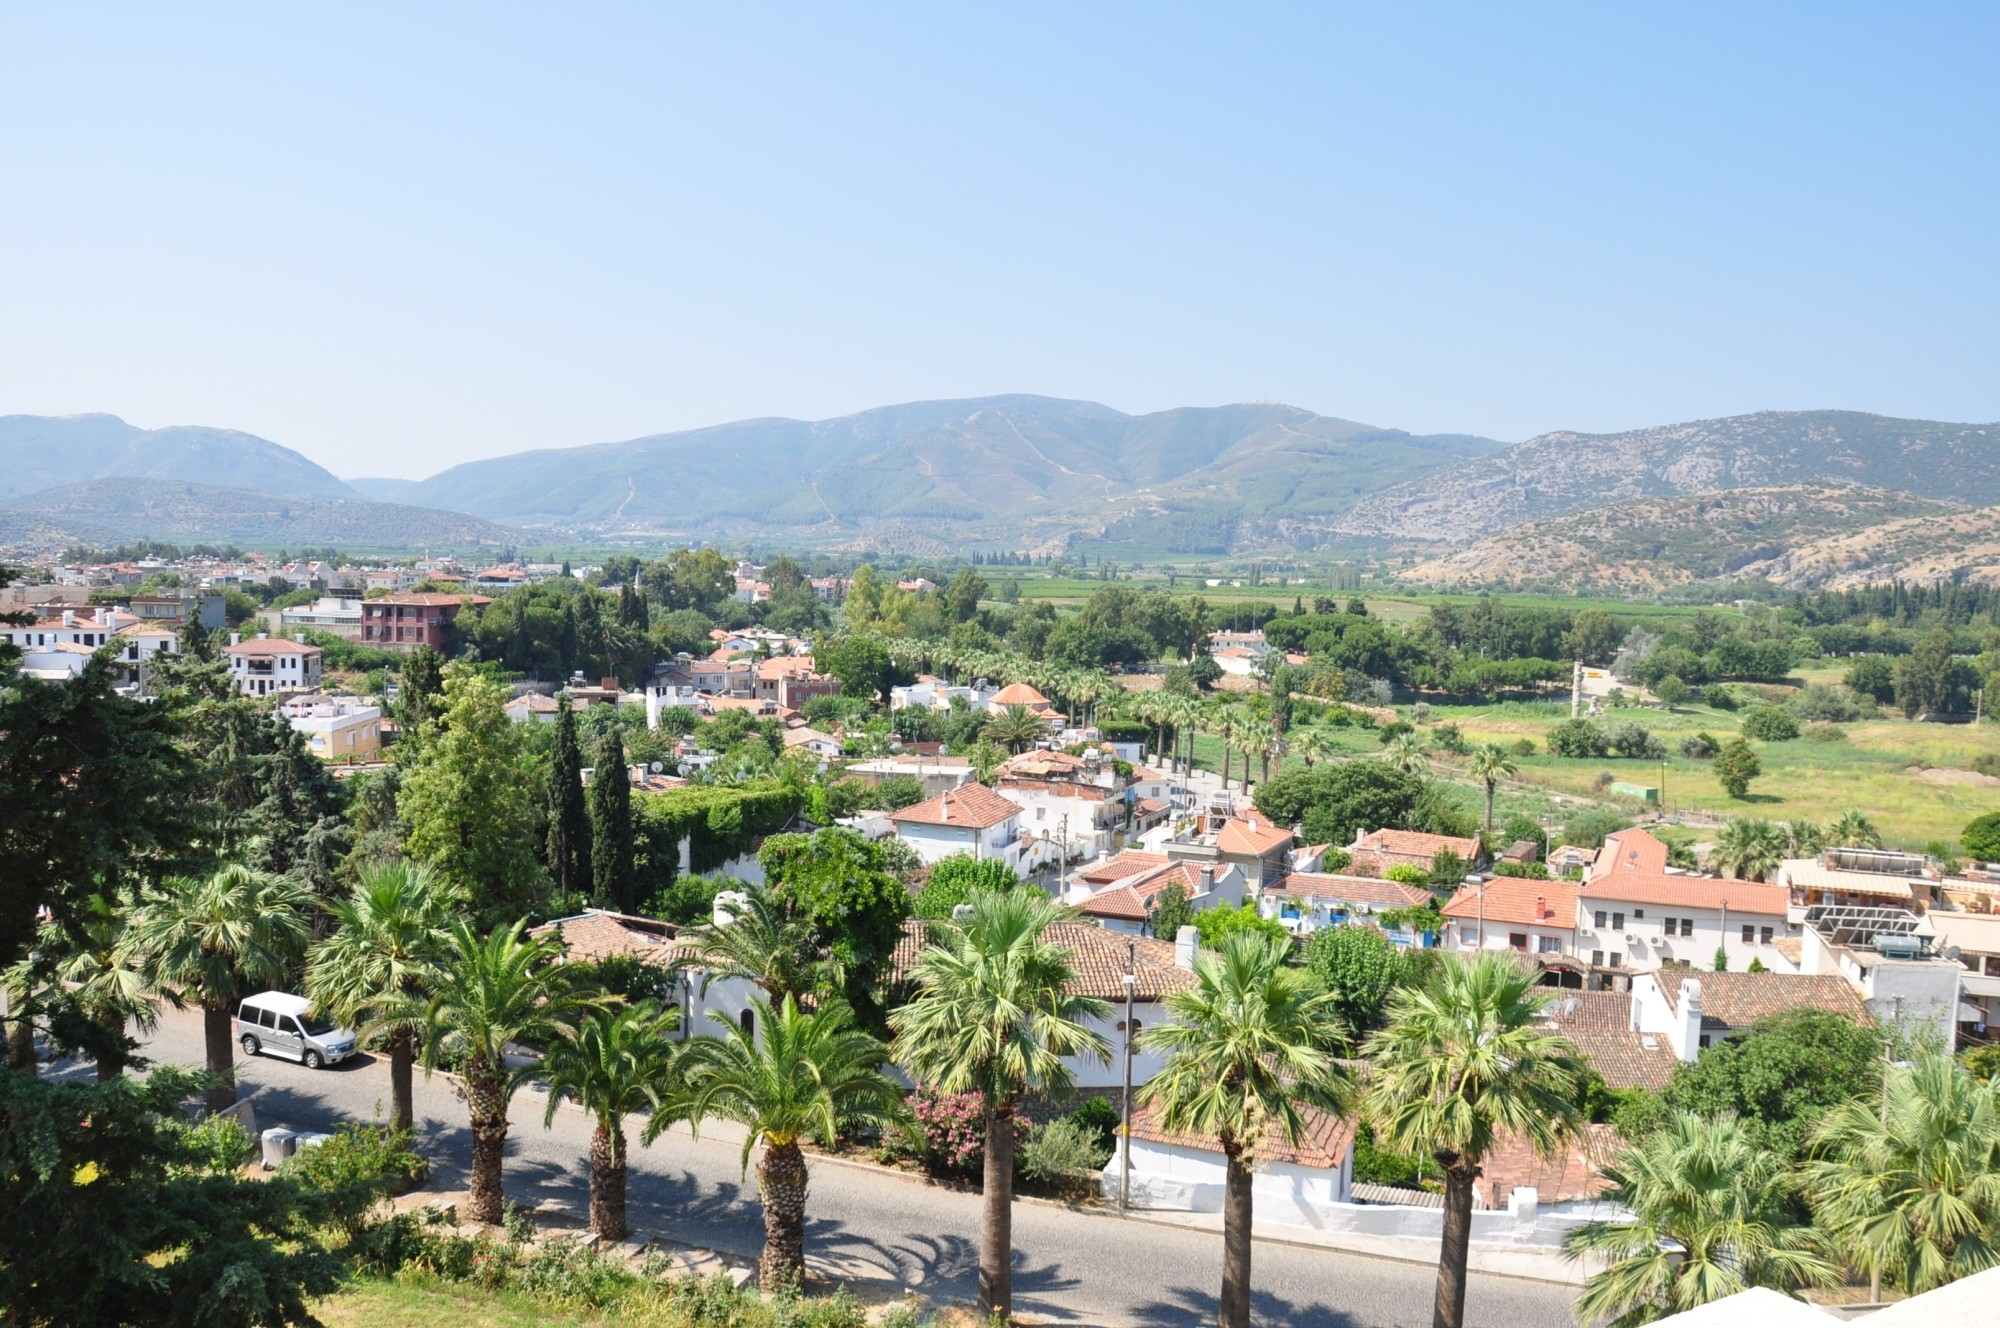 Selçuk seen from the Ayasuluk Fortress